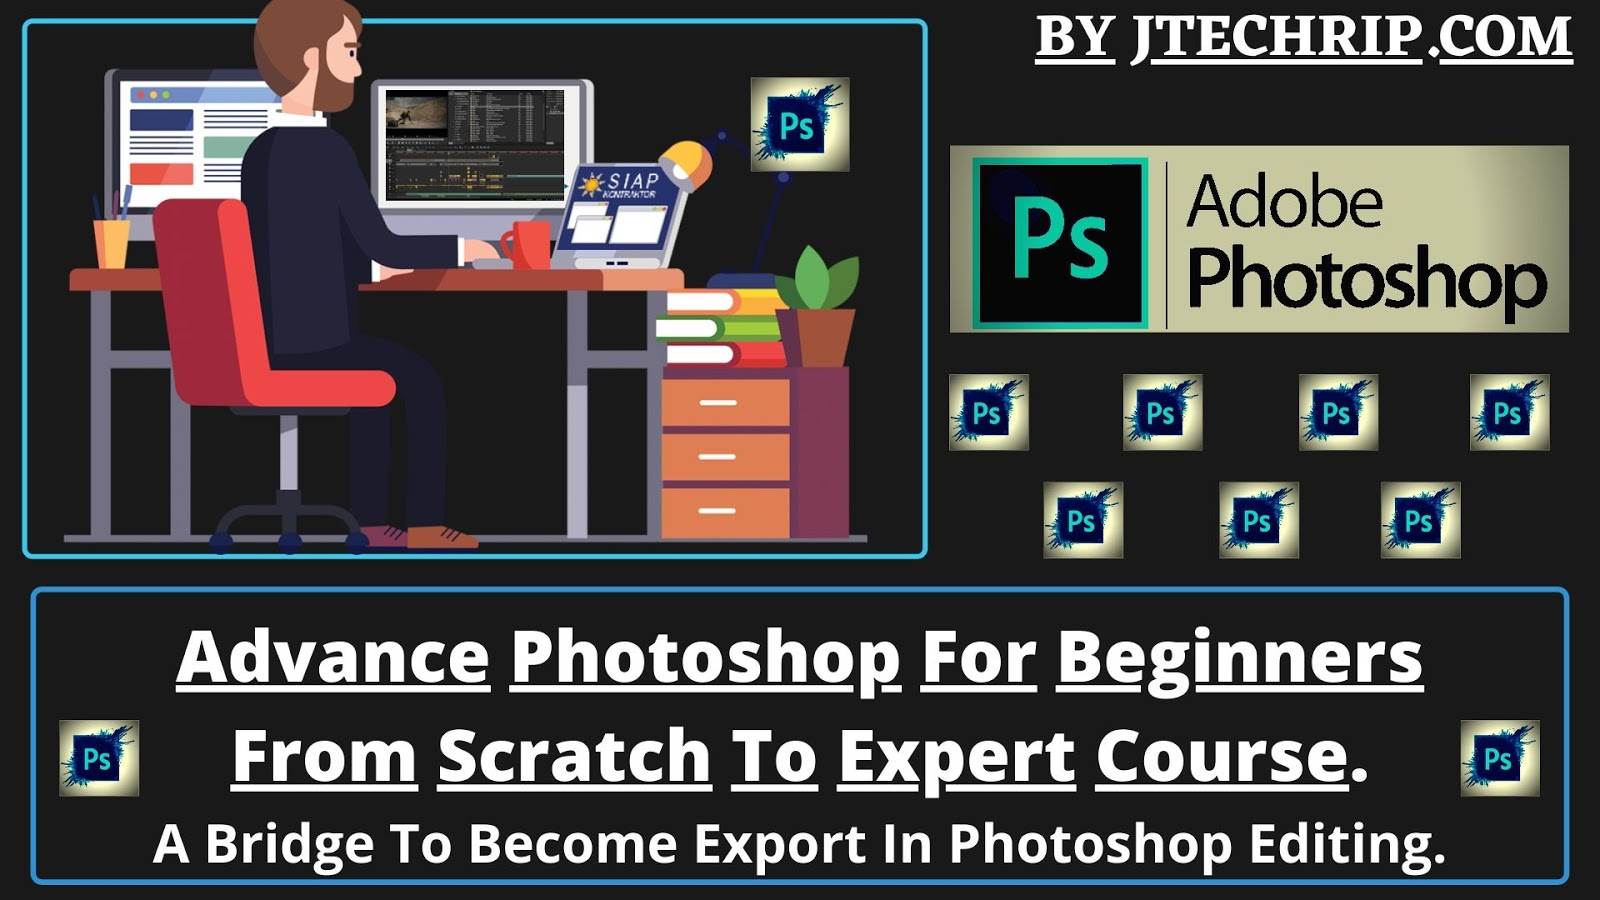 Advance Photoshop For Beginners From Scratch To Expert Course.